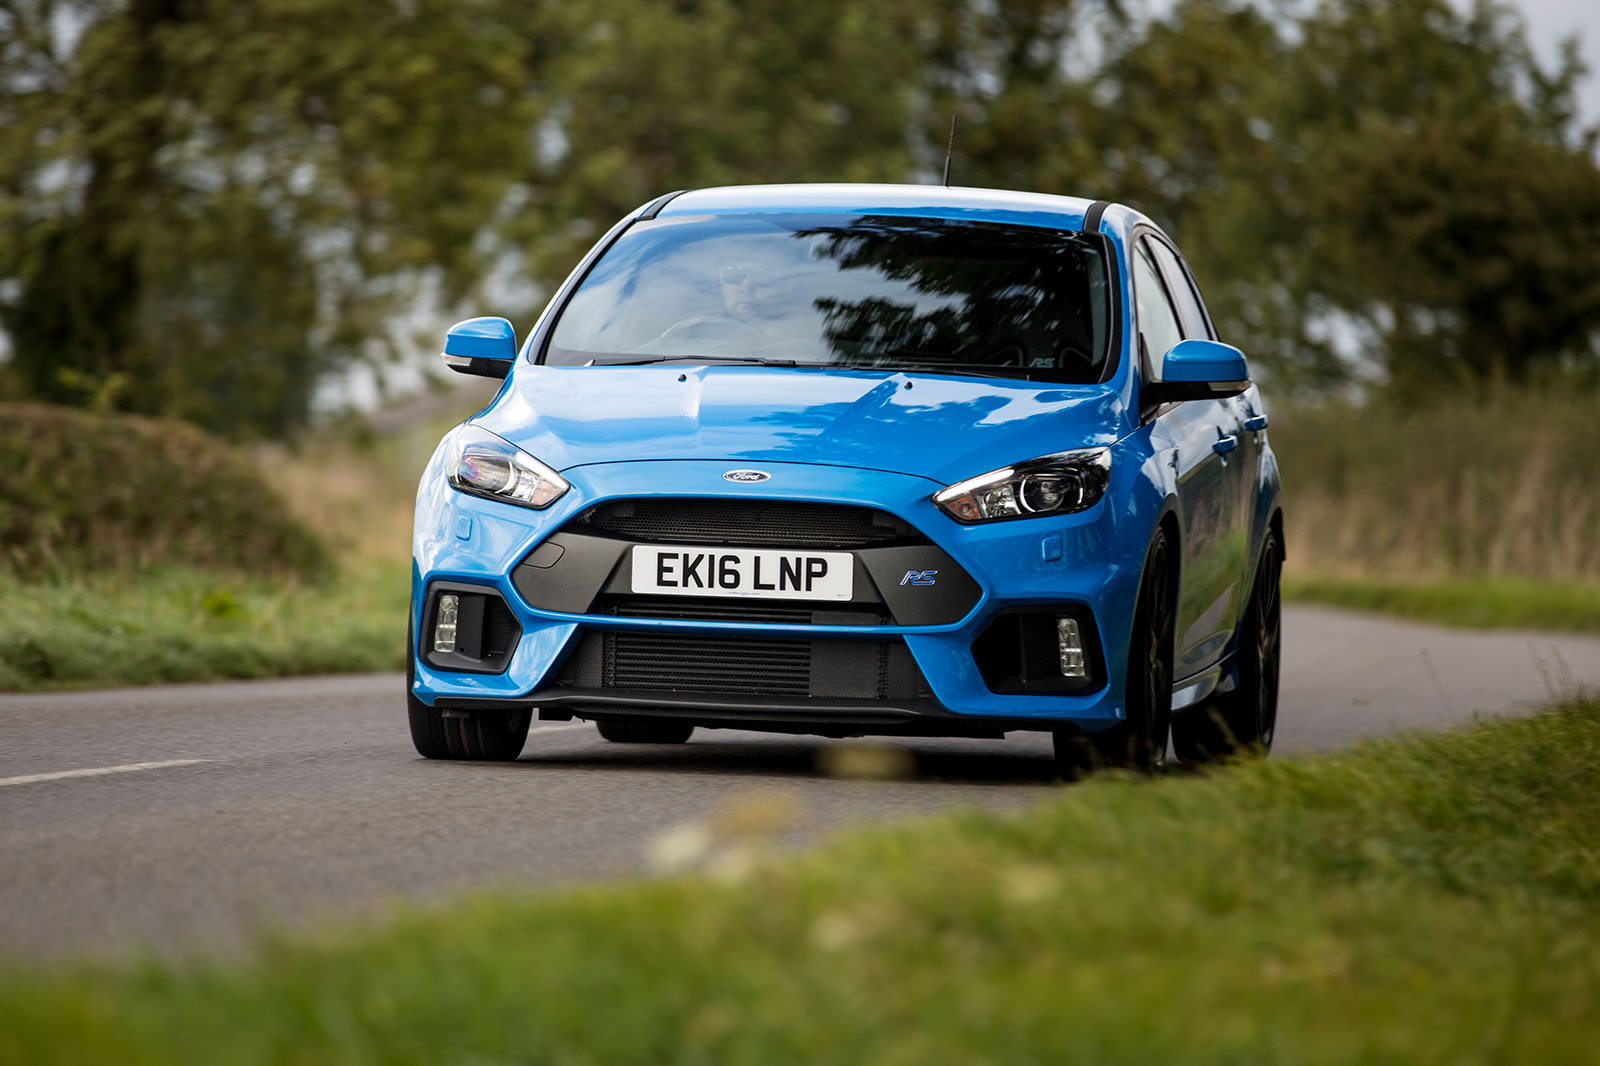 Much has been said already about the focus rs s advanced fourwheel drive and torque vectoring attributes that helped it to earn a five star road test